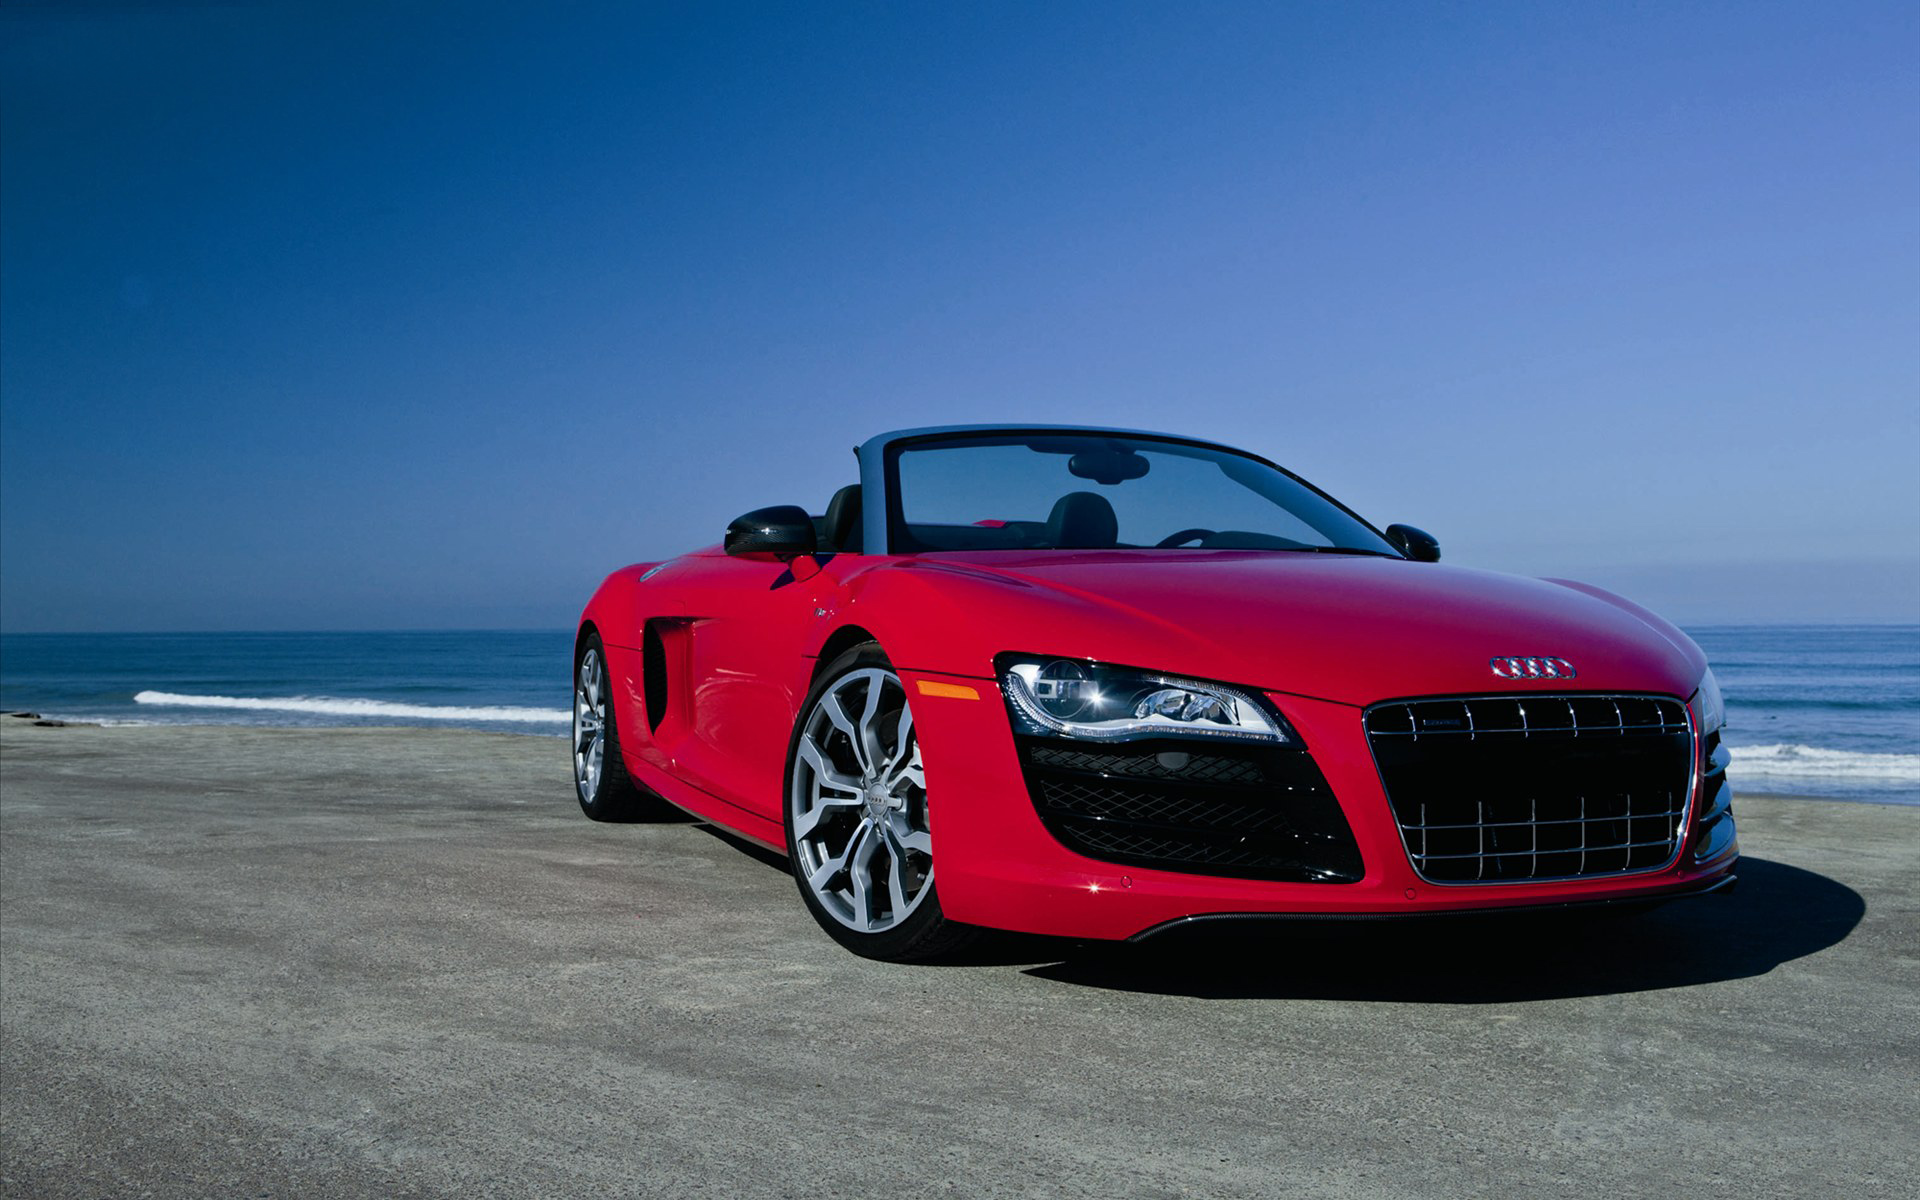 Audi r8 gt spyder 2012 wallpaper hd car wallpapers id - Cars hd wallpapers for laptop ...